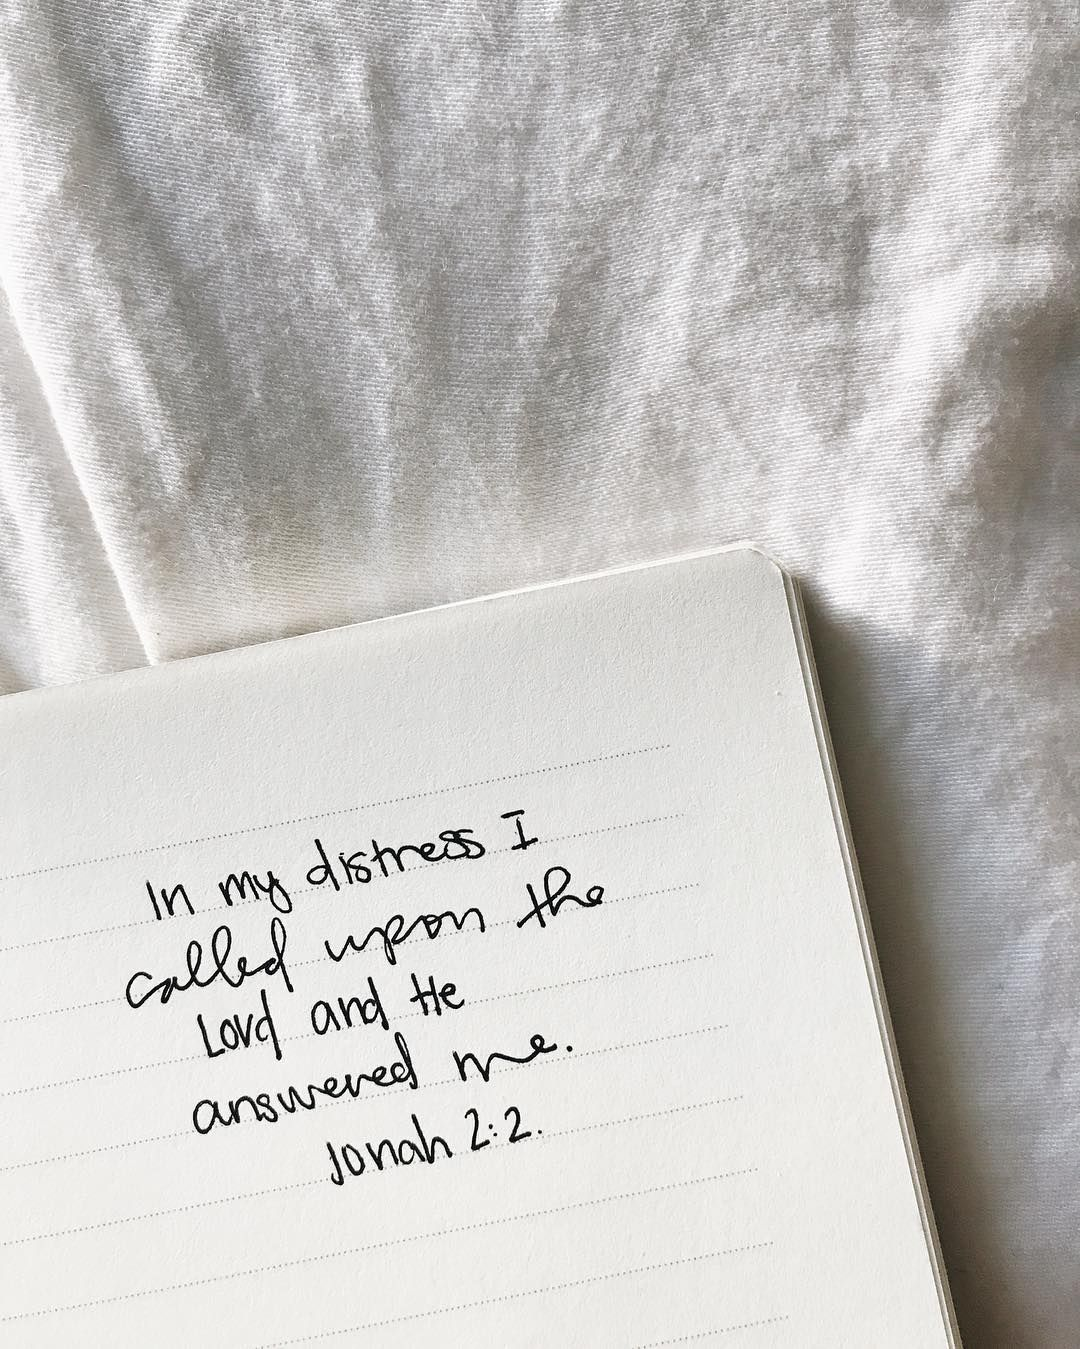 Pin by Gabbi Byrd on faith   Bible verses quotes, Bible